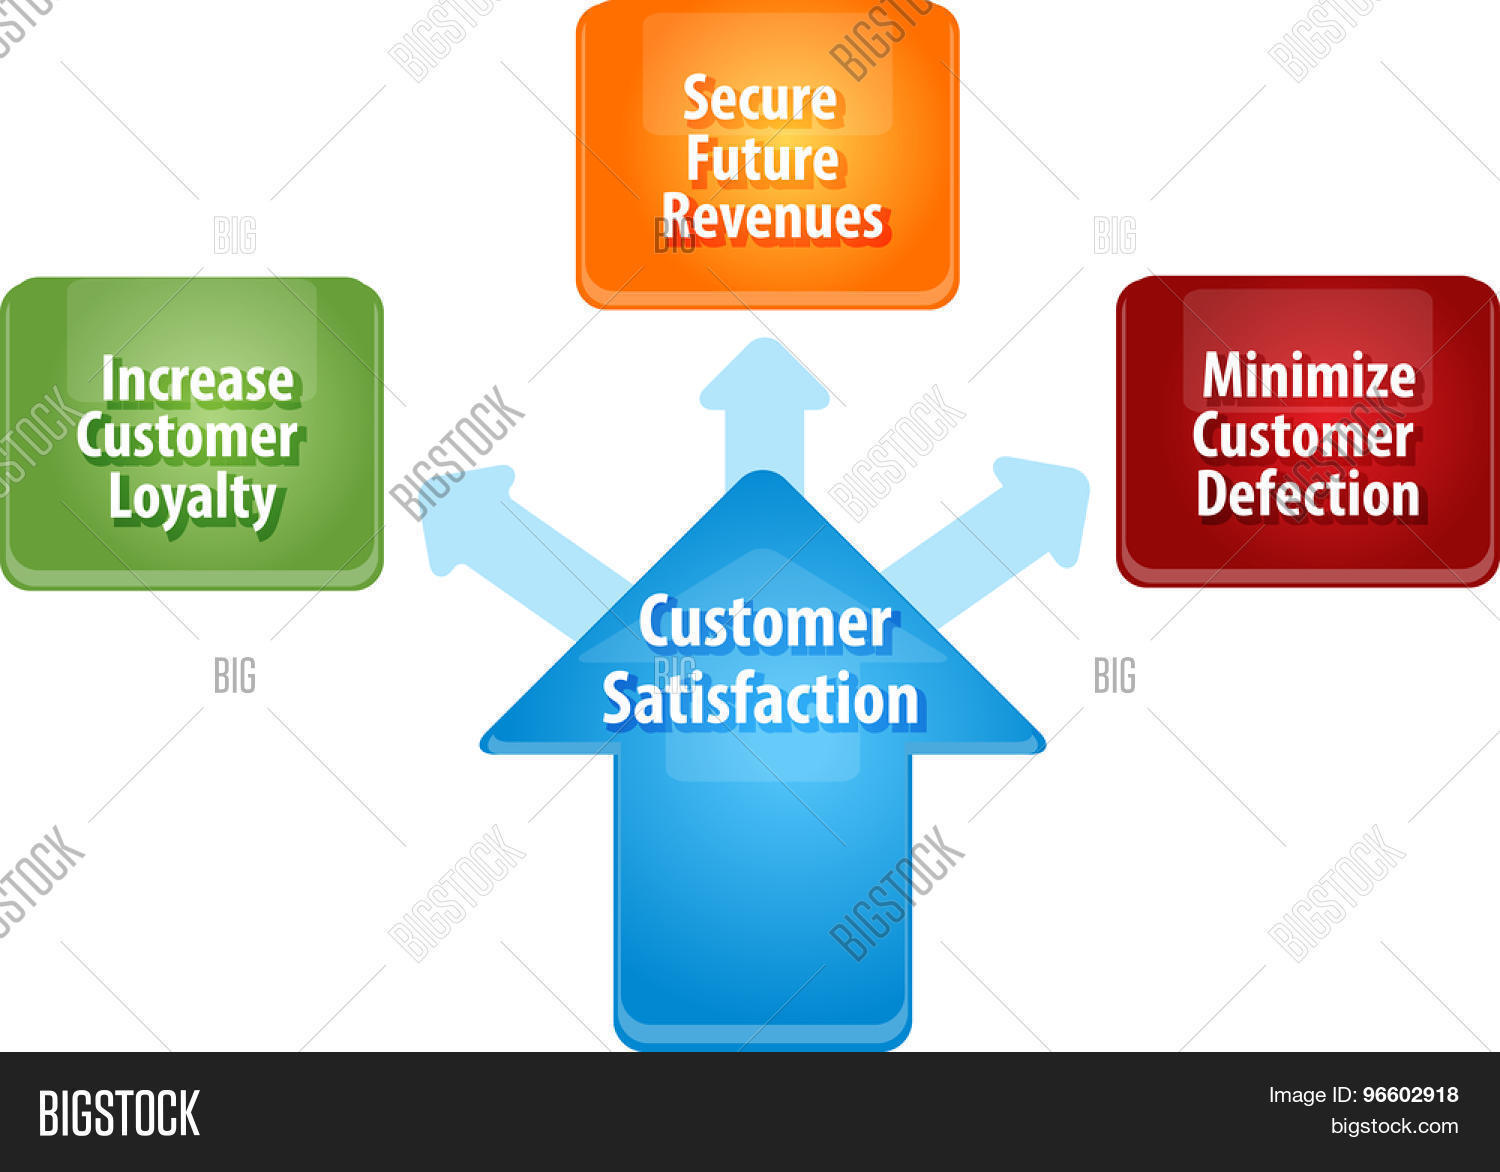 Business Strategy Concept Vector & Photo | Bigstock